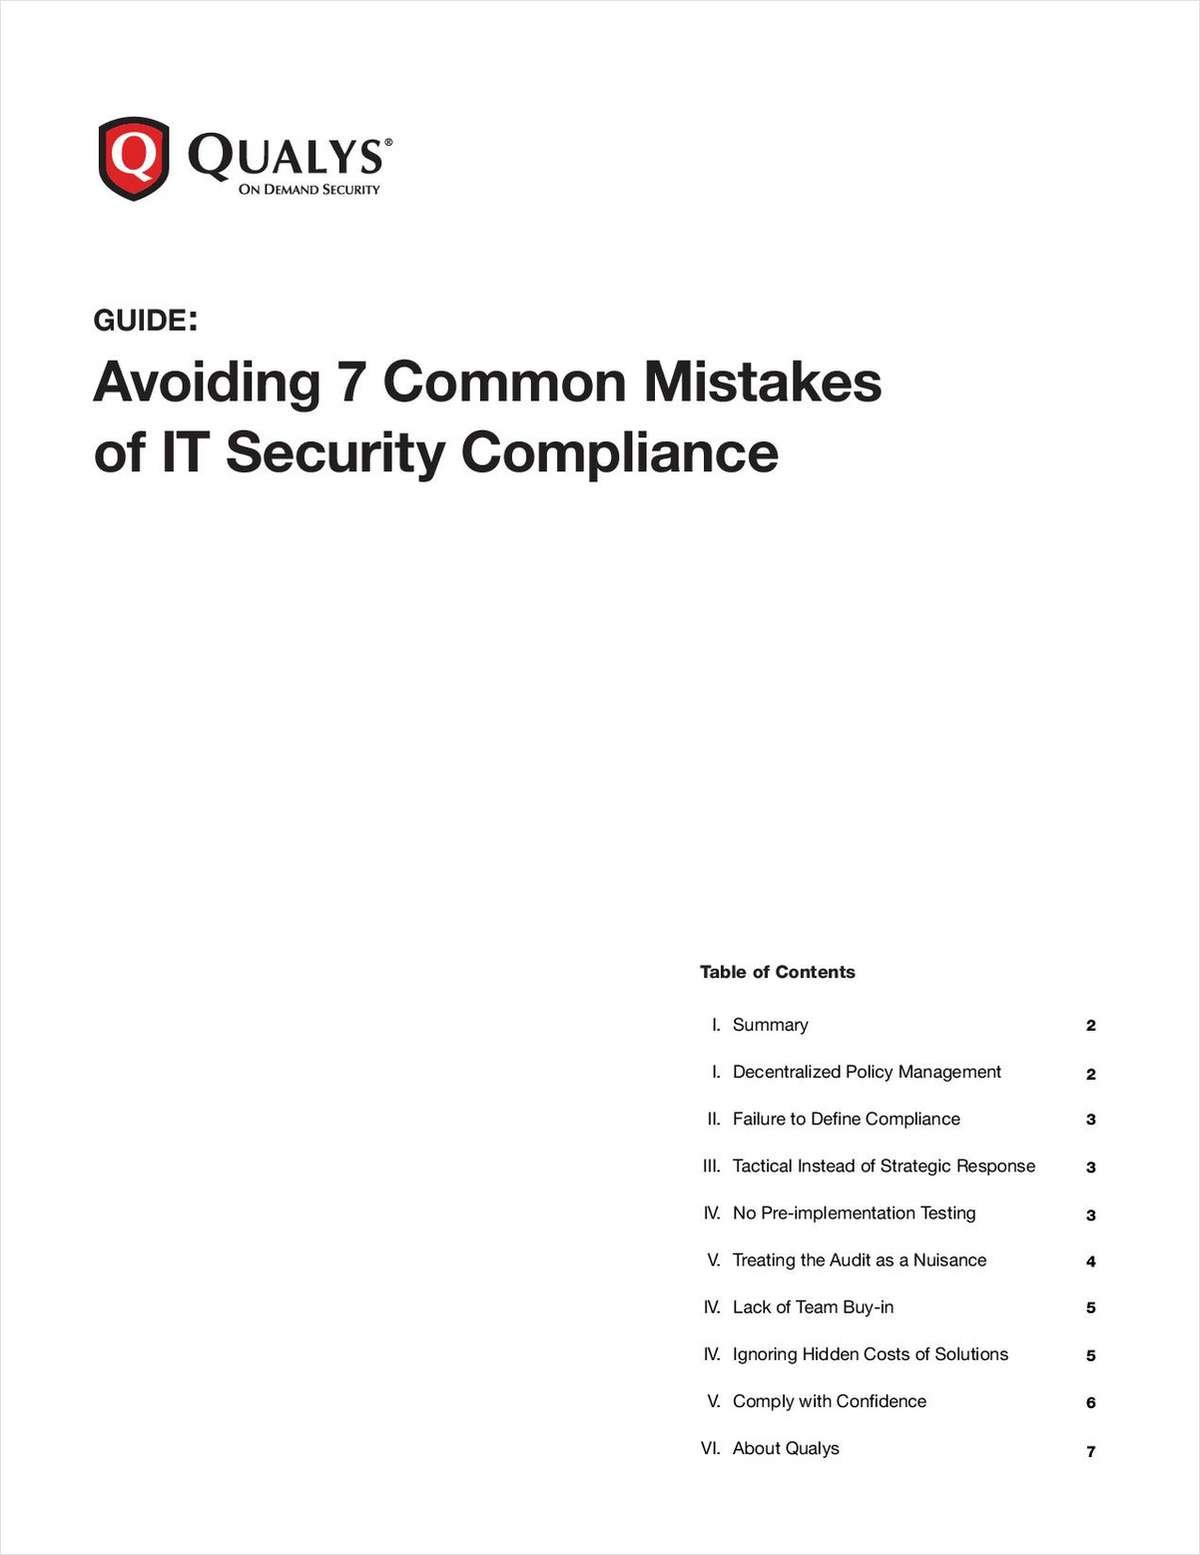 Avoiding 7 Common Mistakes of IT Security Compliance